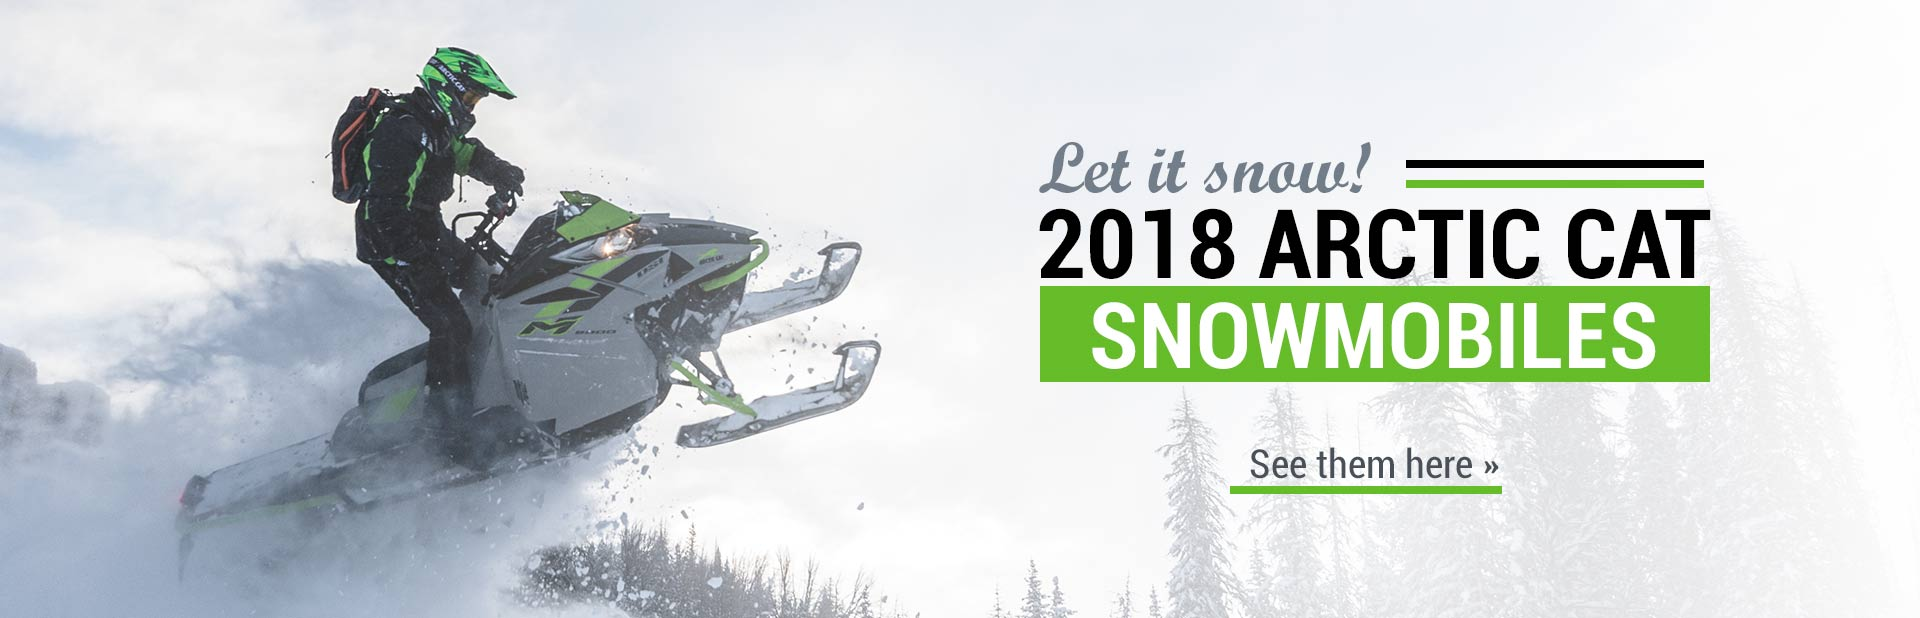 2018 Arctic Cat Snowmobiles: Click here to view the models.